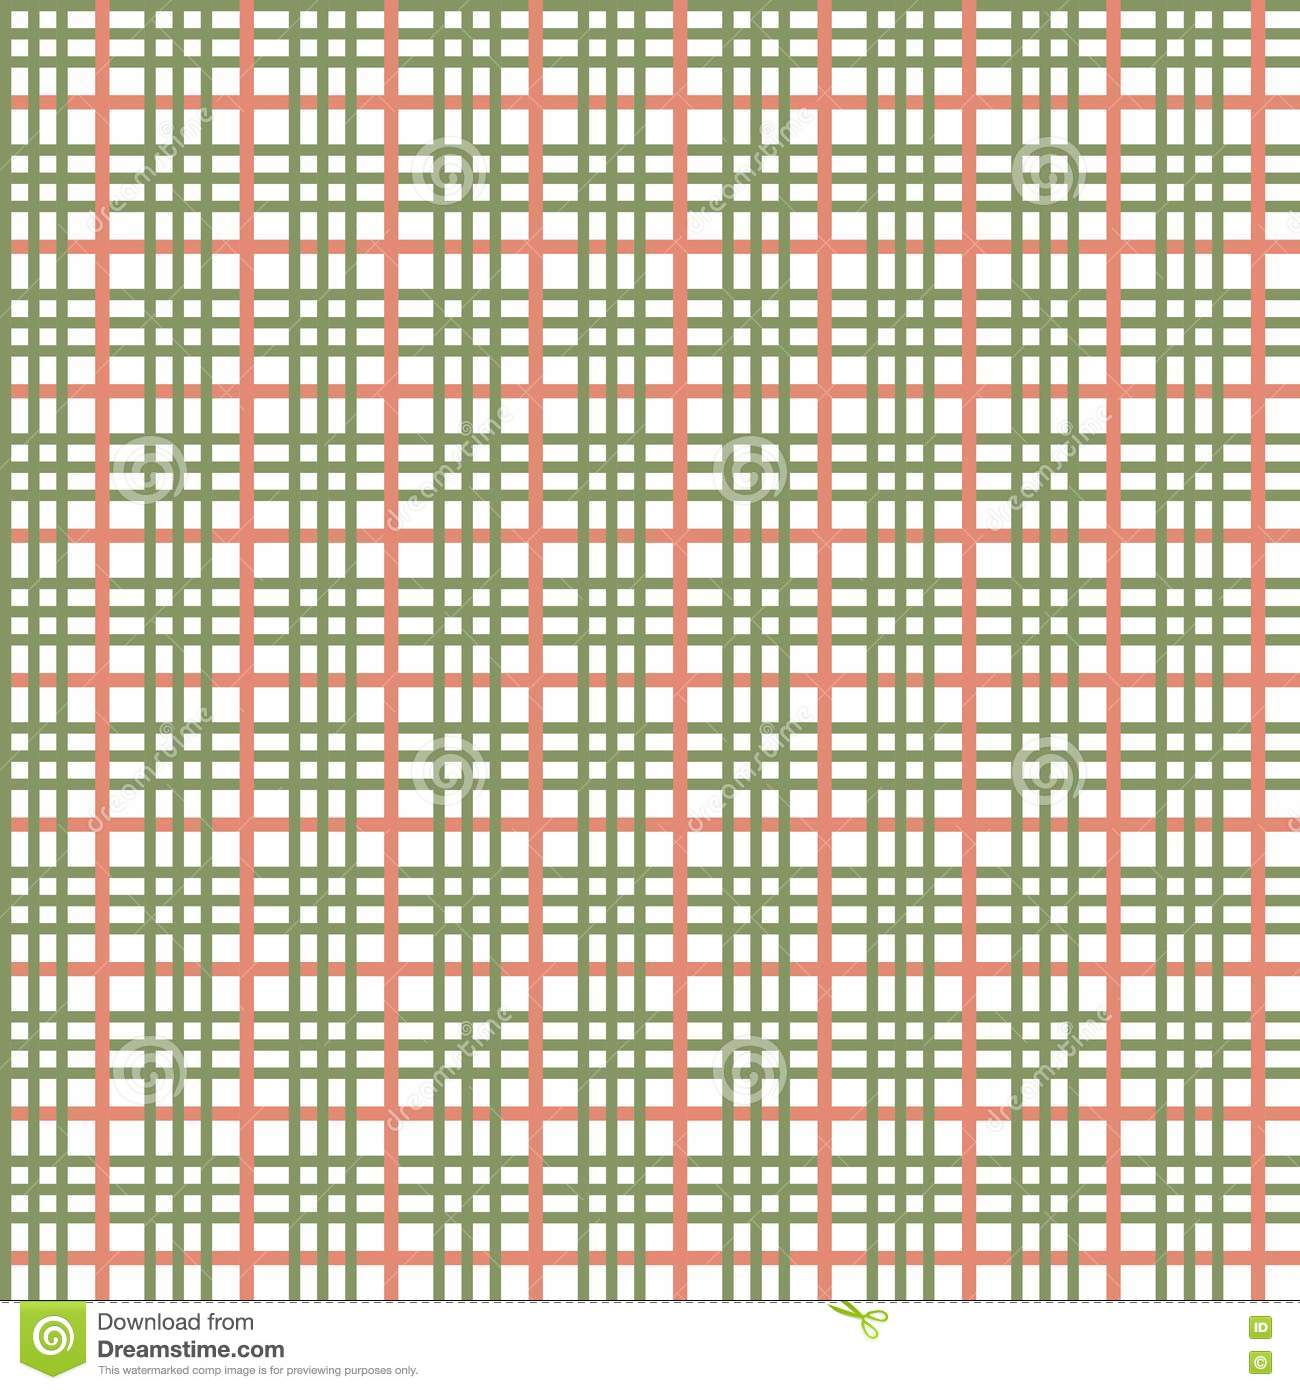 Olive seamless pattern